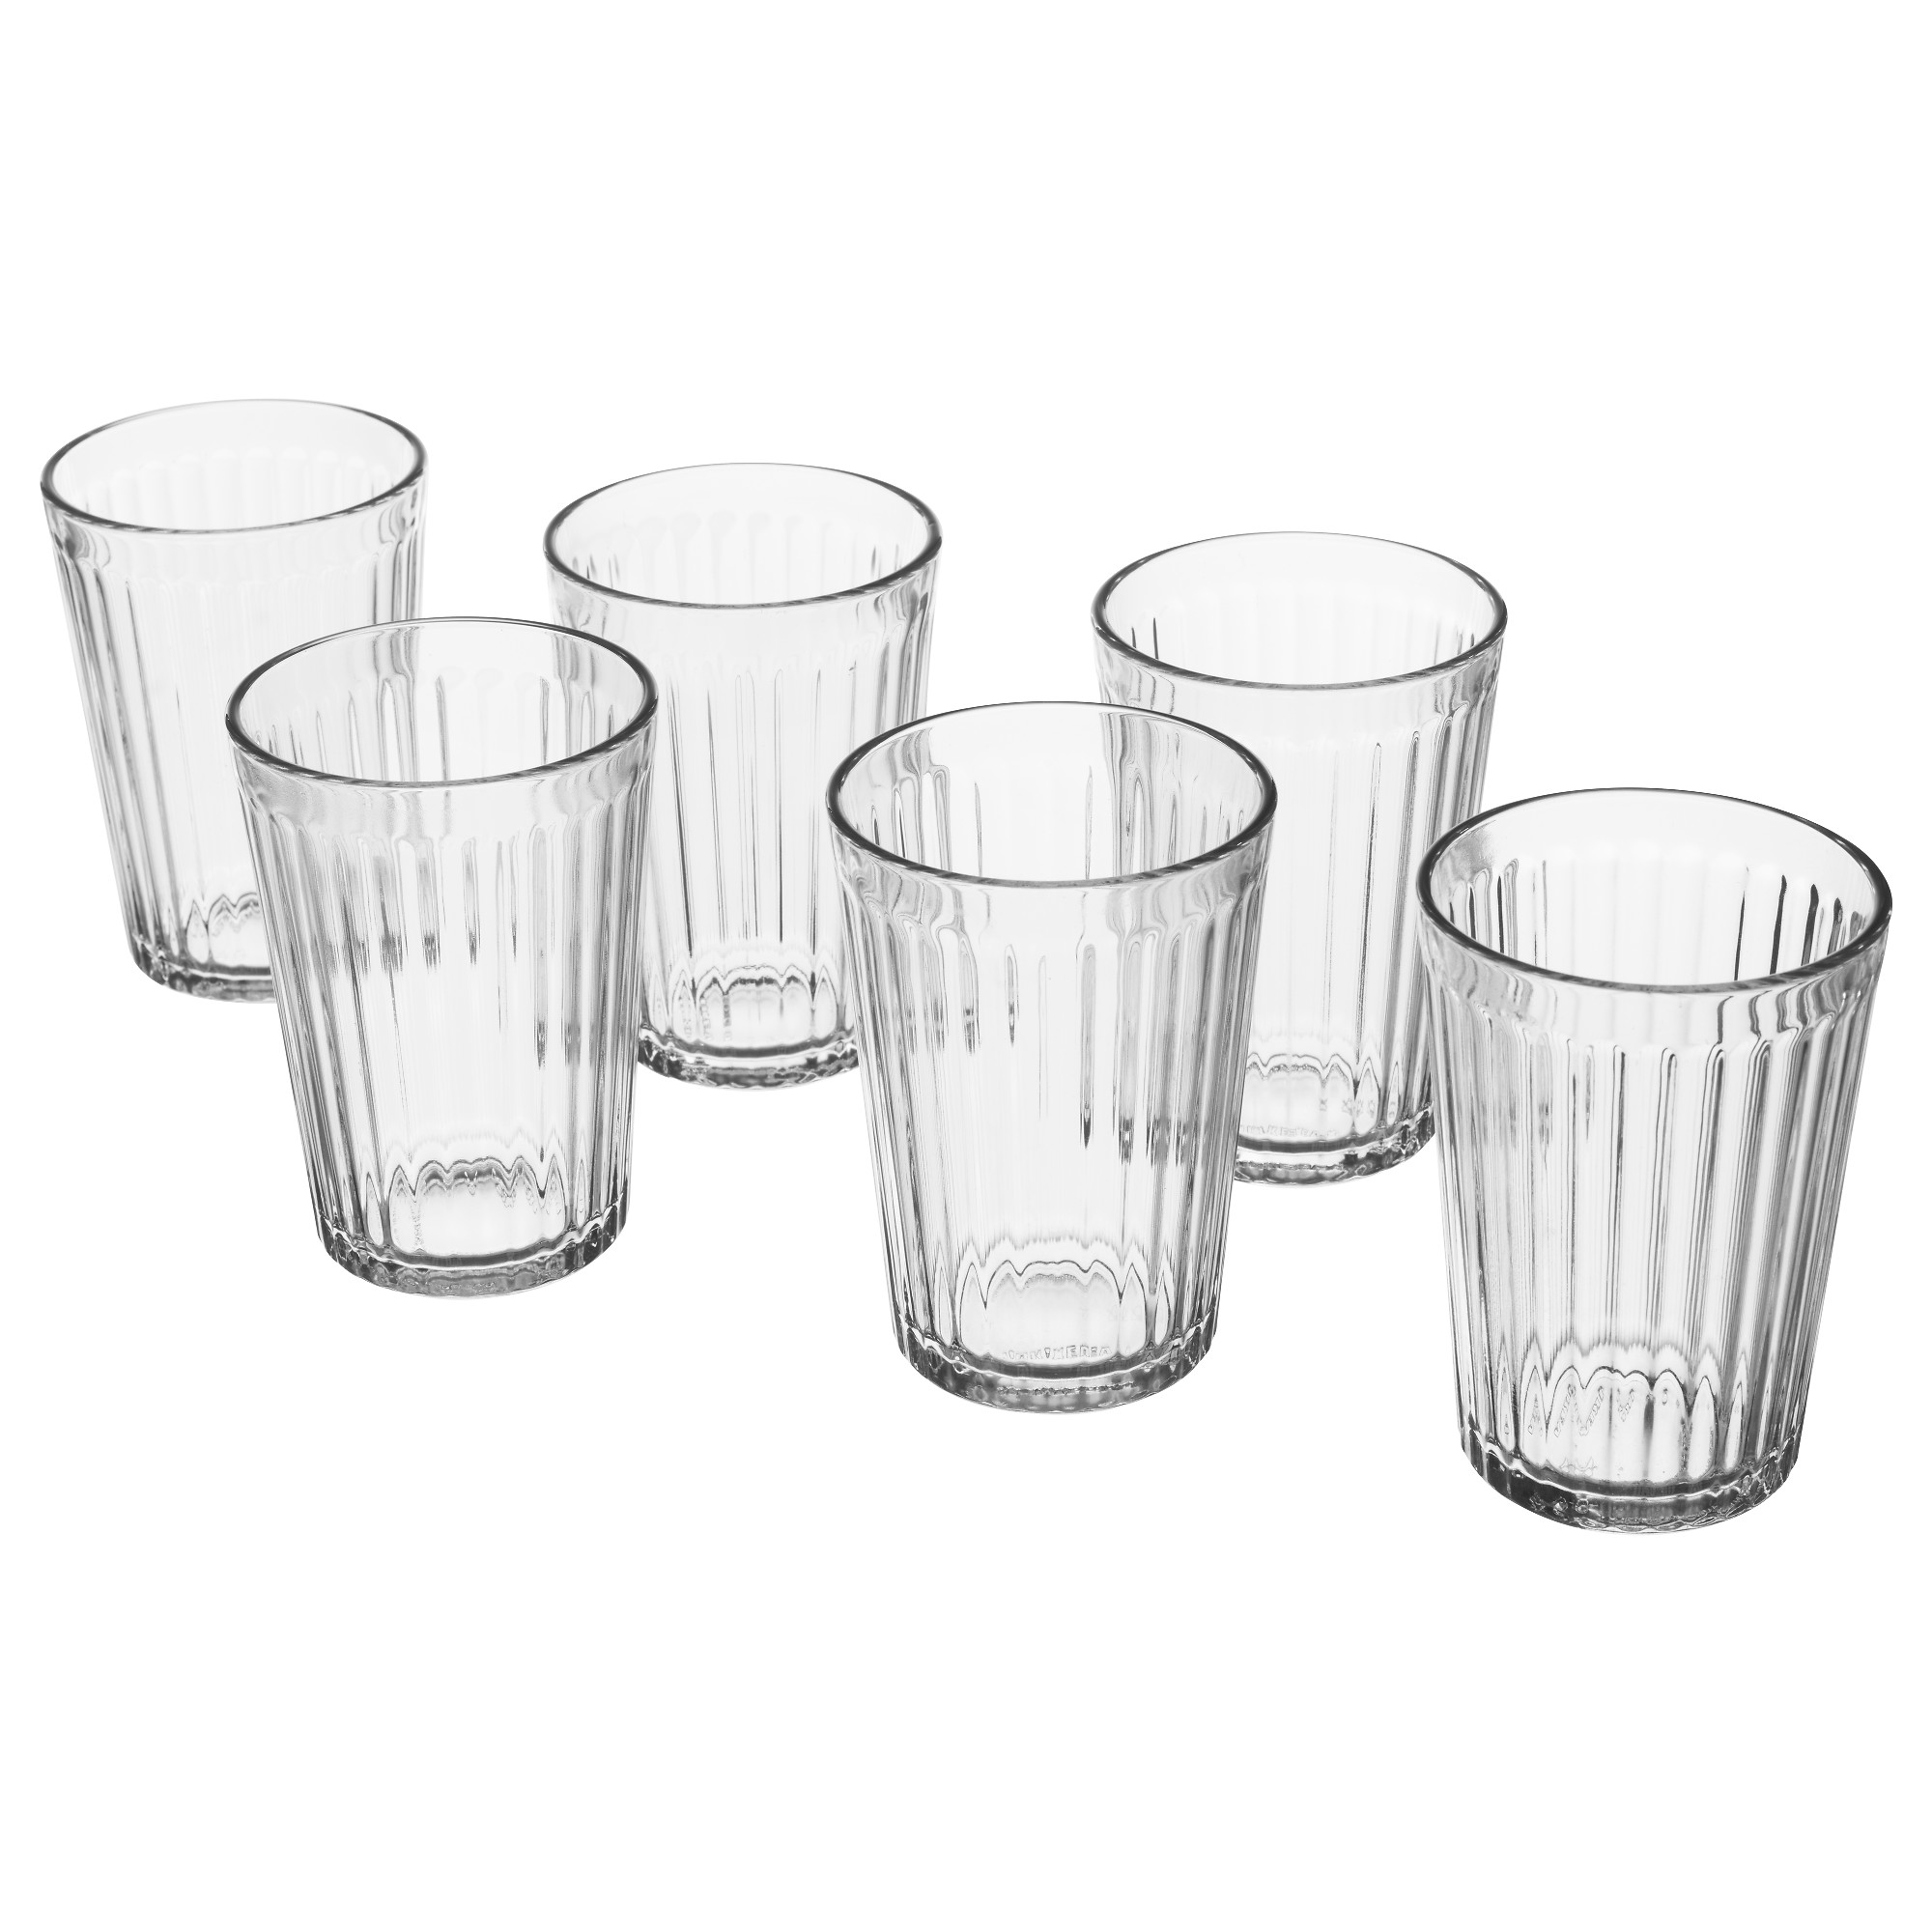 Glass juice cups design - Inter Ikea Systems B V 1999 2017 Privacy Policy